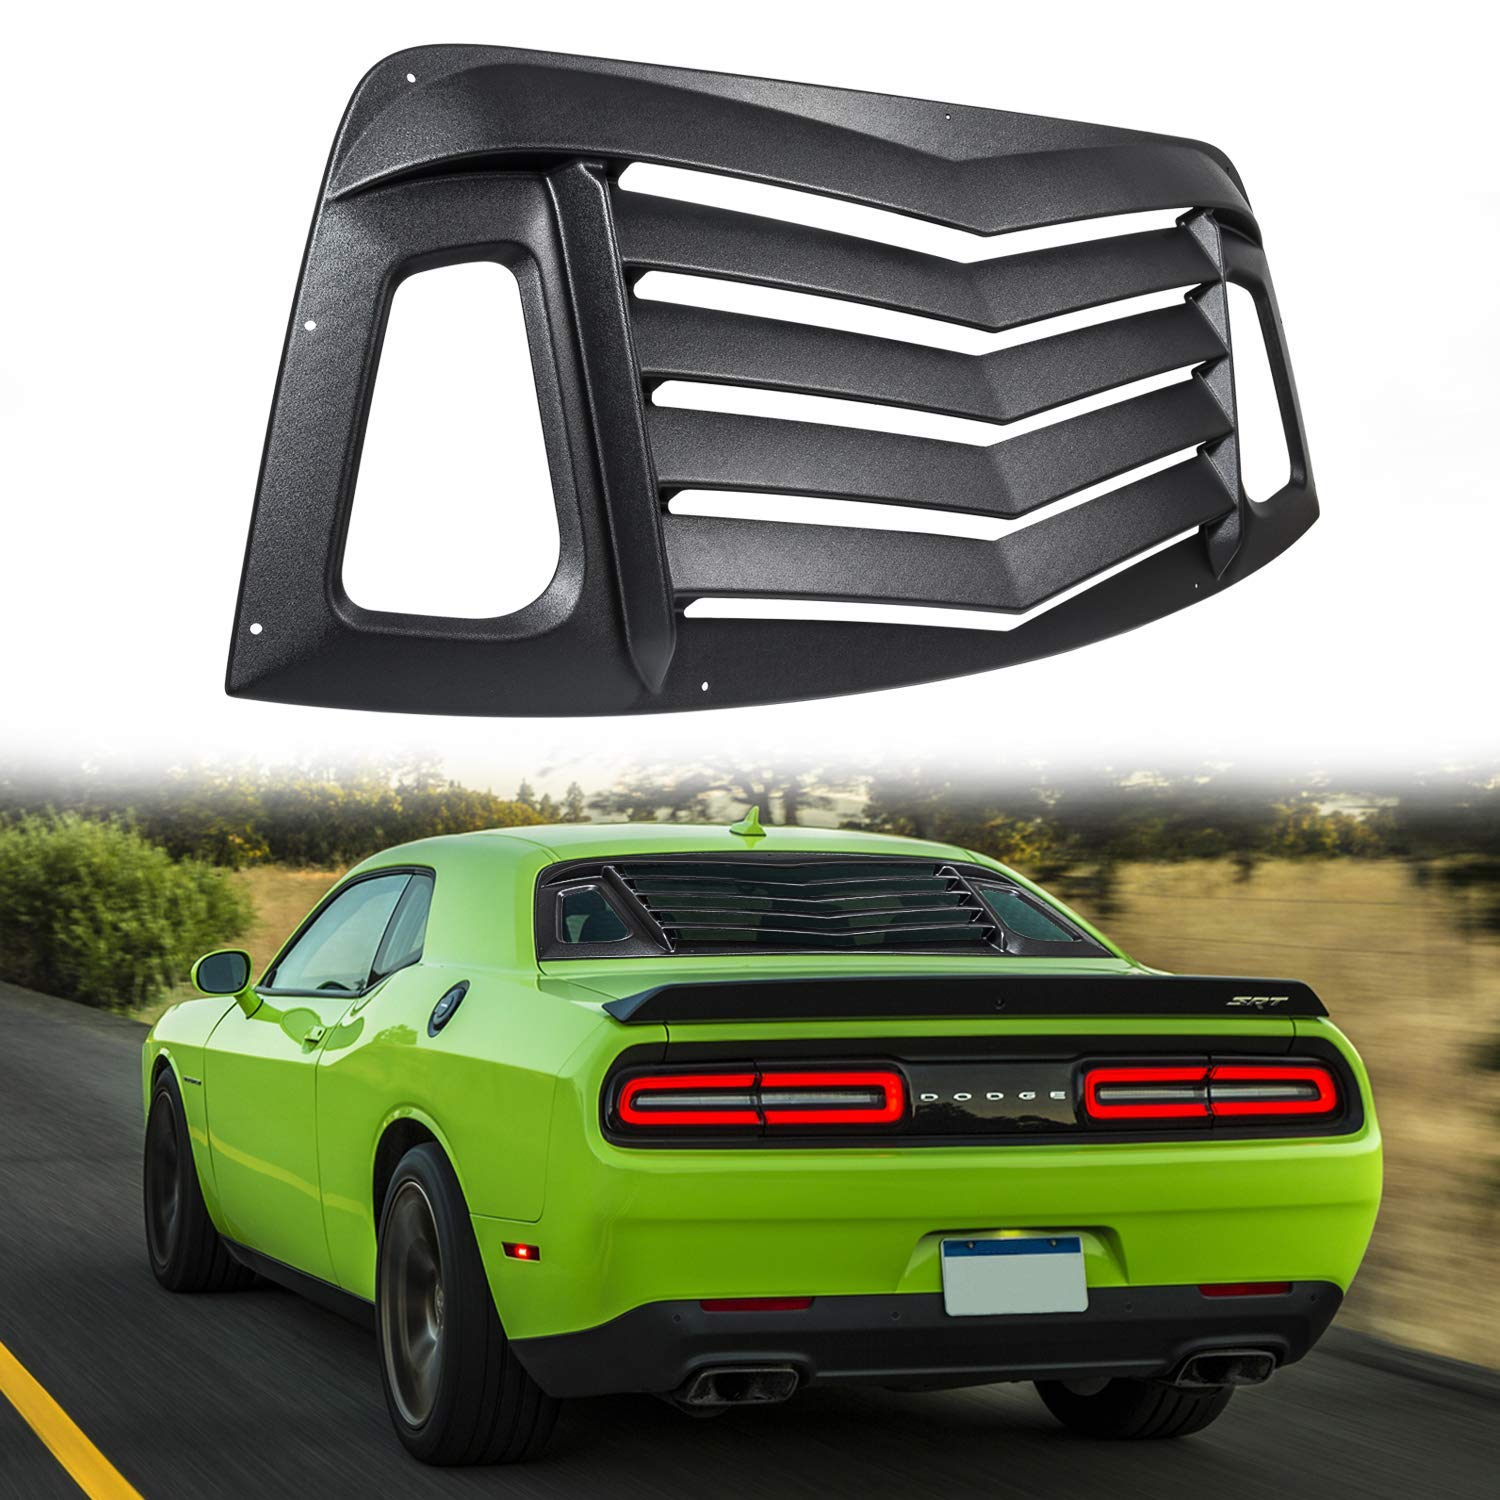 Matte Black Rear Window Louvers Sun Shade Cover for 2008-2019 Dodge Challenger